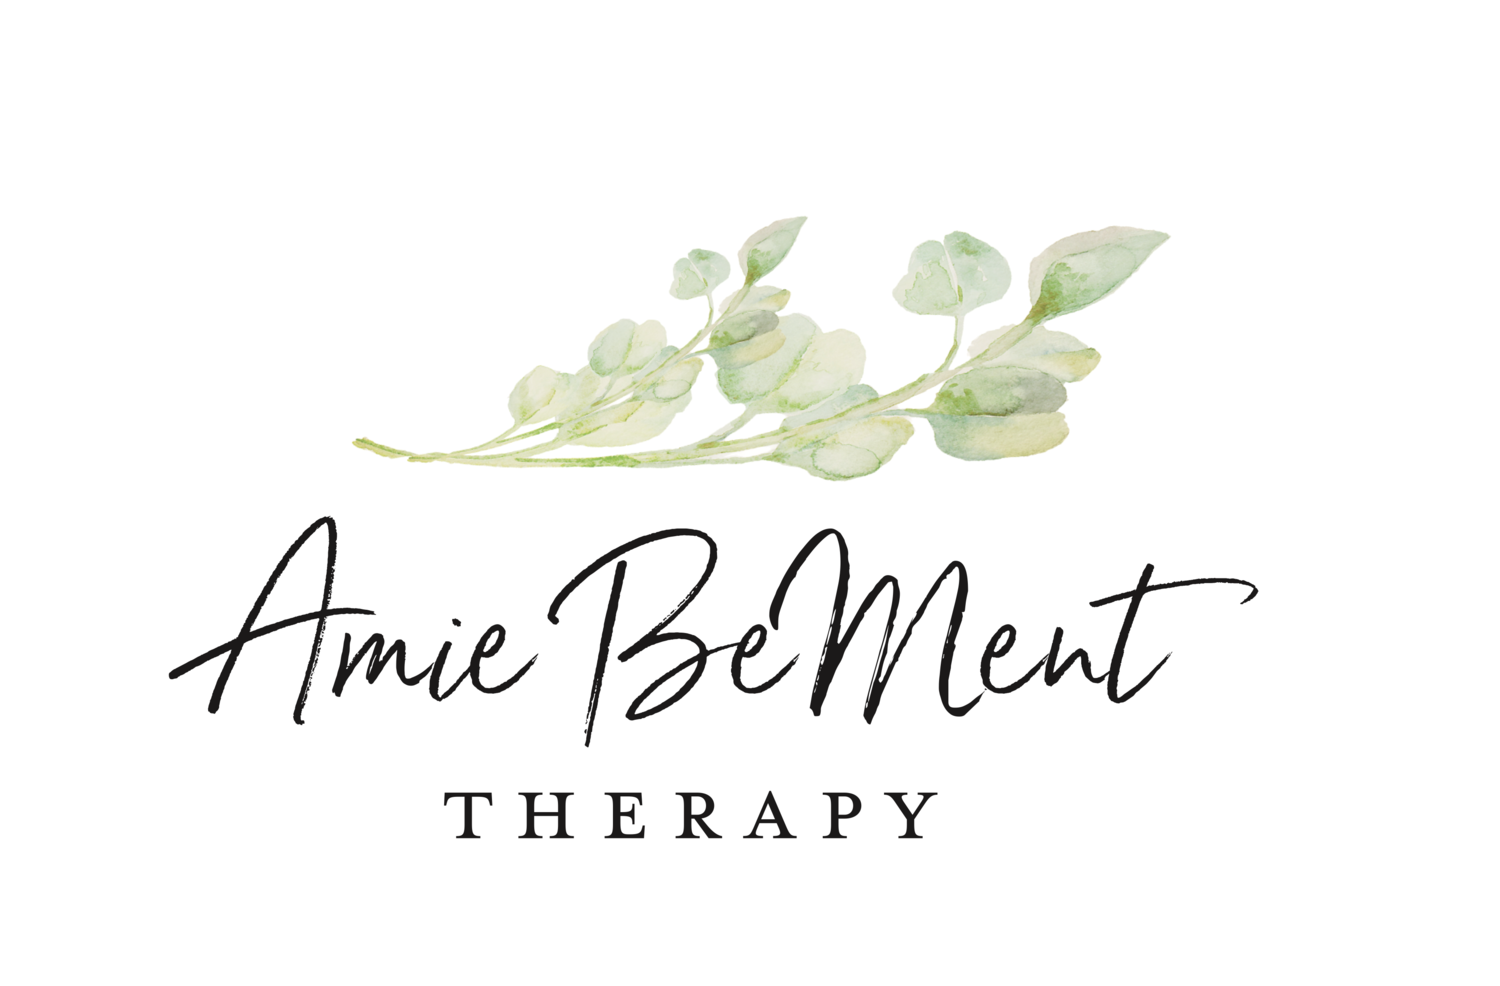 Amie BeMent Therapy